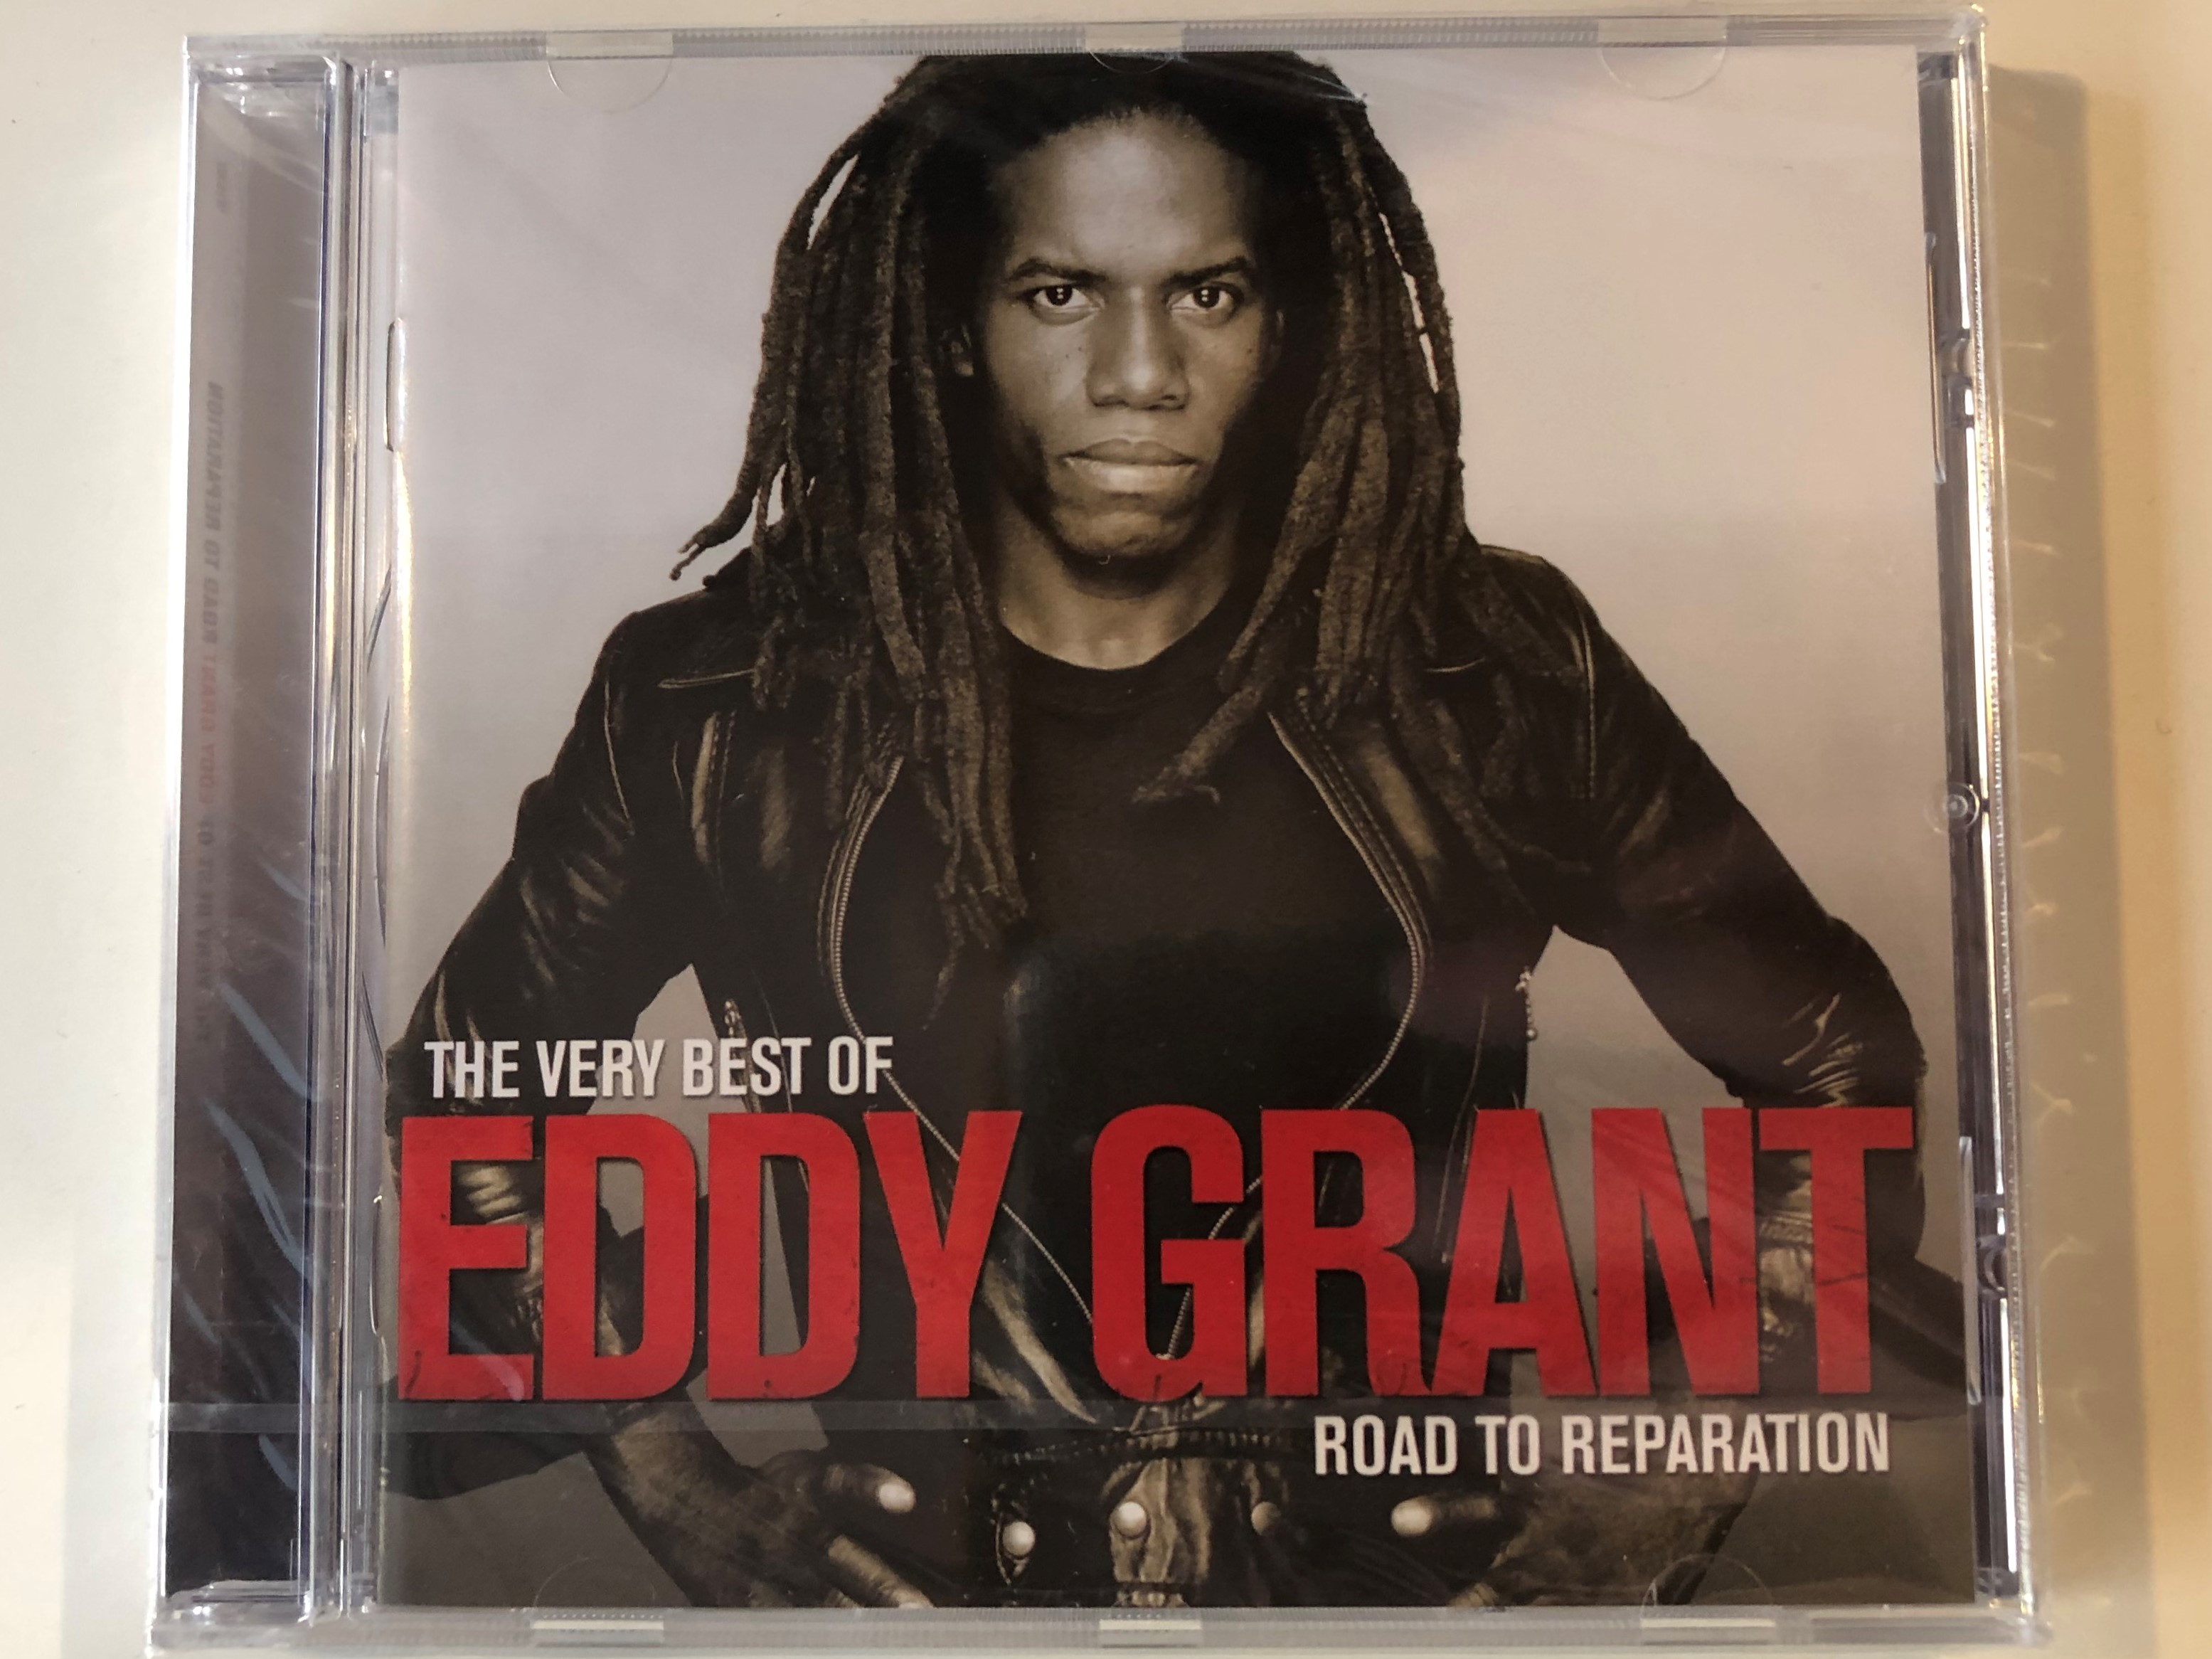 the-very-best-of-eddy-grant-road-to-reparation-universal-audio-cd-2008-1775167-1-.jpg